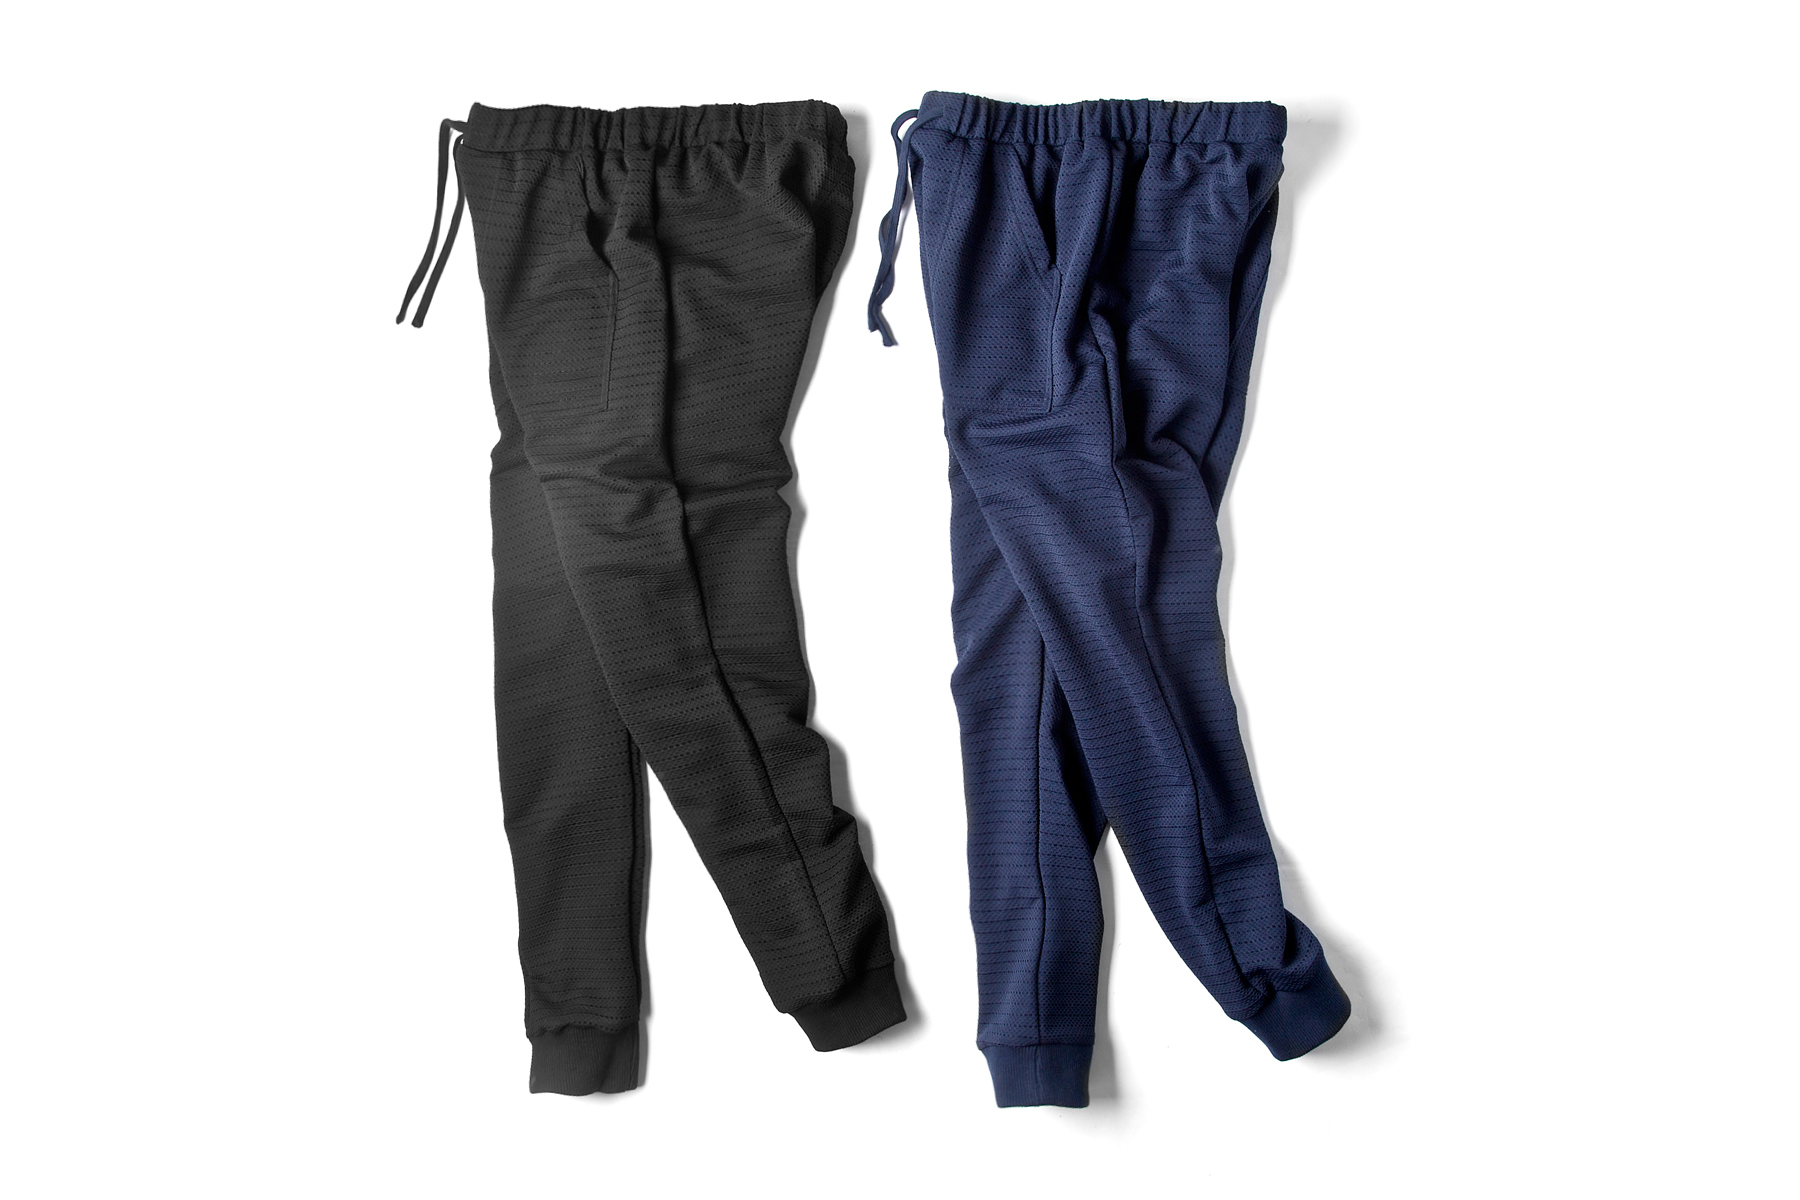 publish brand 2014 summer julian jogger pants